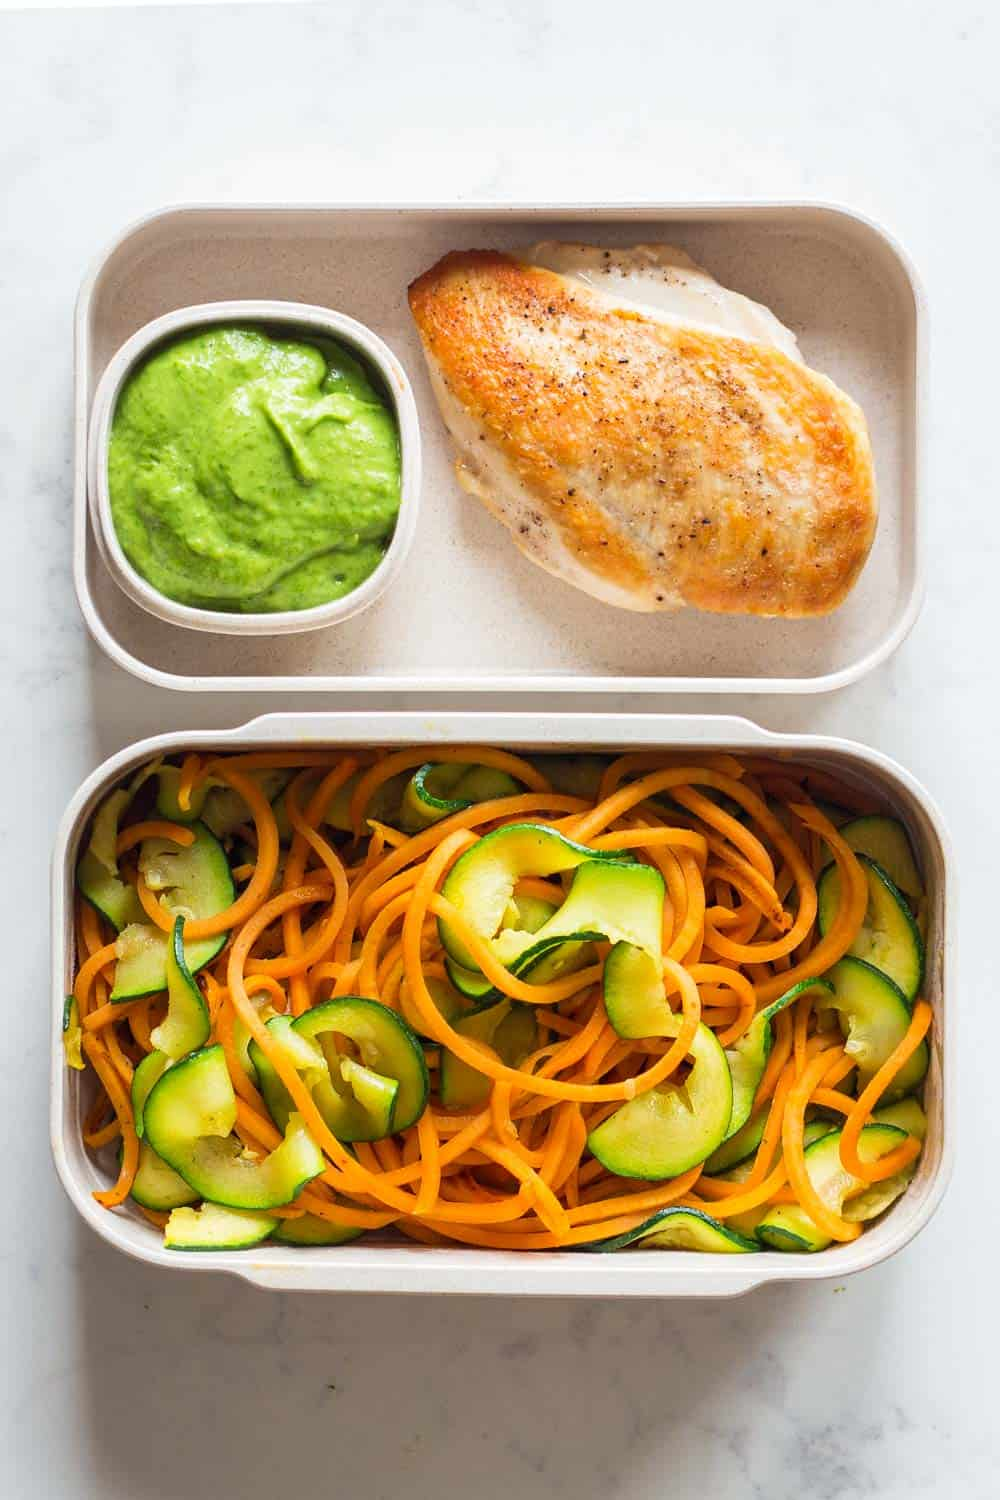 Two meal prep containers filled with pan-fried chicken breast, stir-fried spiralized sweet potato and zucchini with an avocado cilantro dressing on the side.